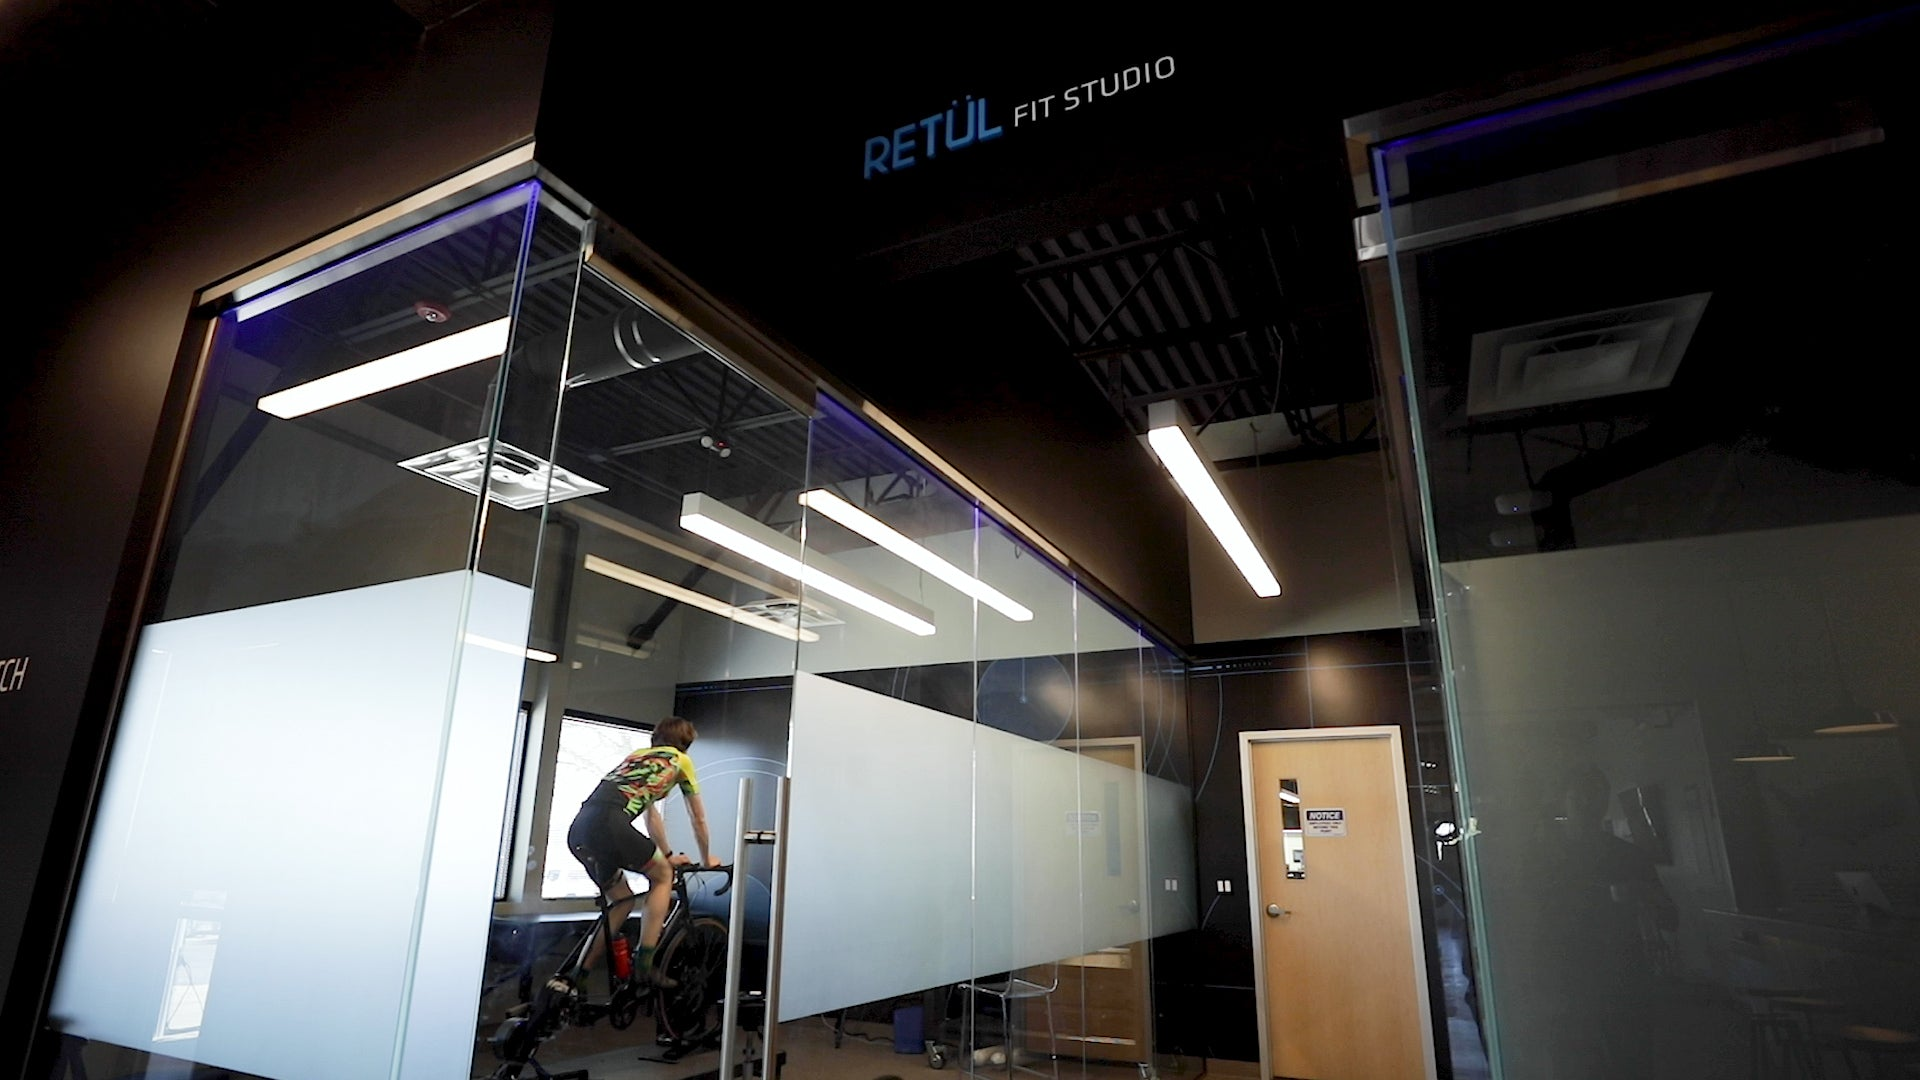 Retul bike fit studio